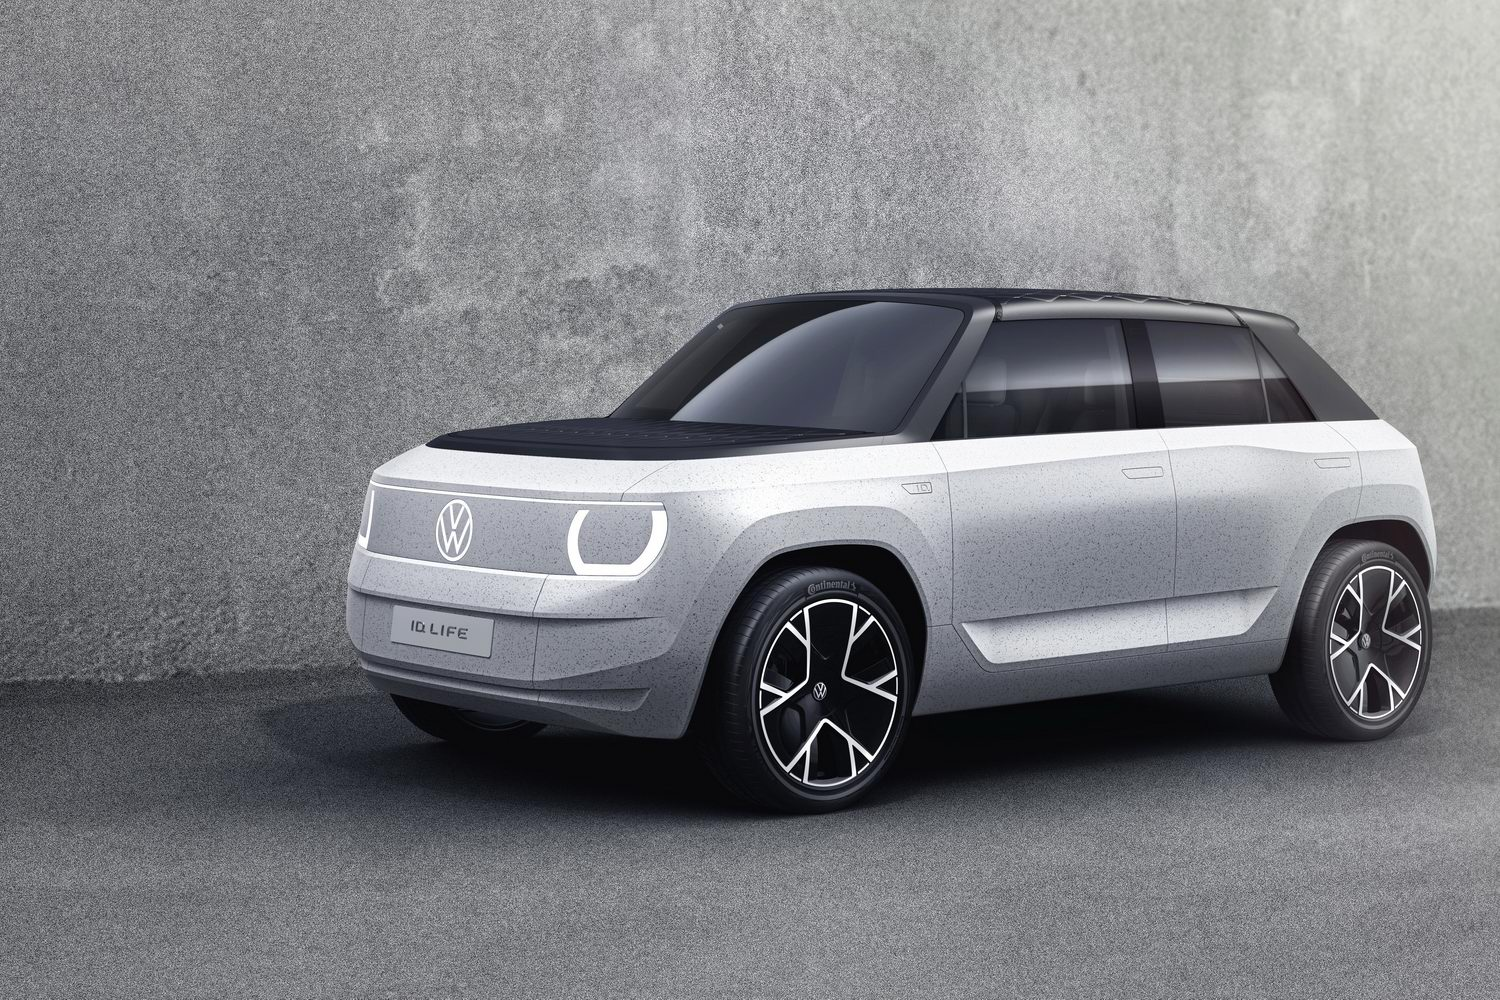 Car News | VW ID. Life concept previews new crossover | CompleteCar.ie